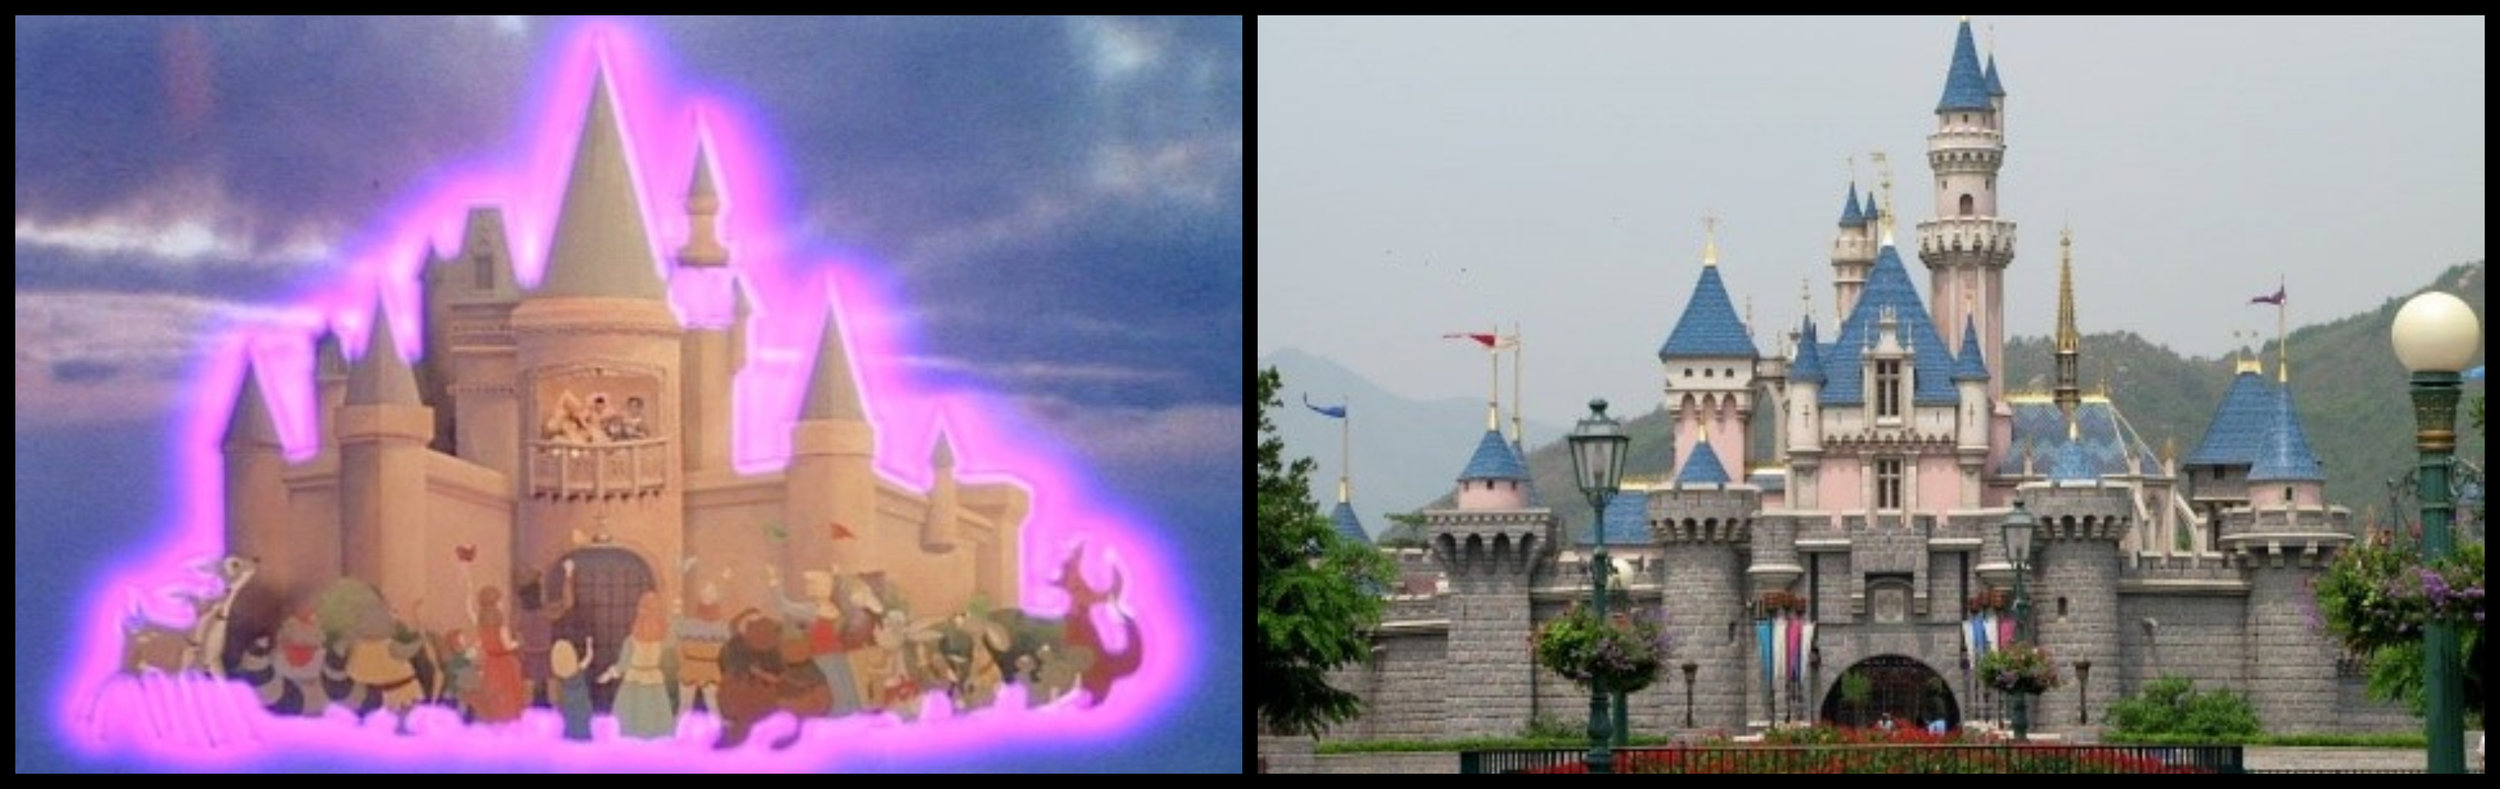 Fig. 8 - The magic castle in  9 to 5  and Sleeping Beauty Castle, Disneyland (Anaheim, California).